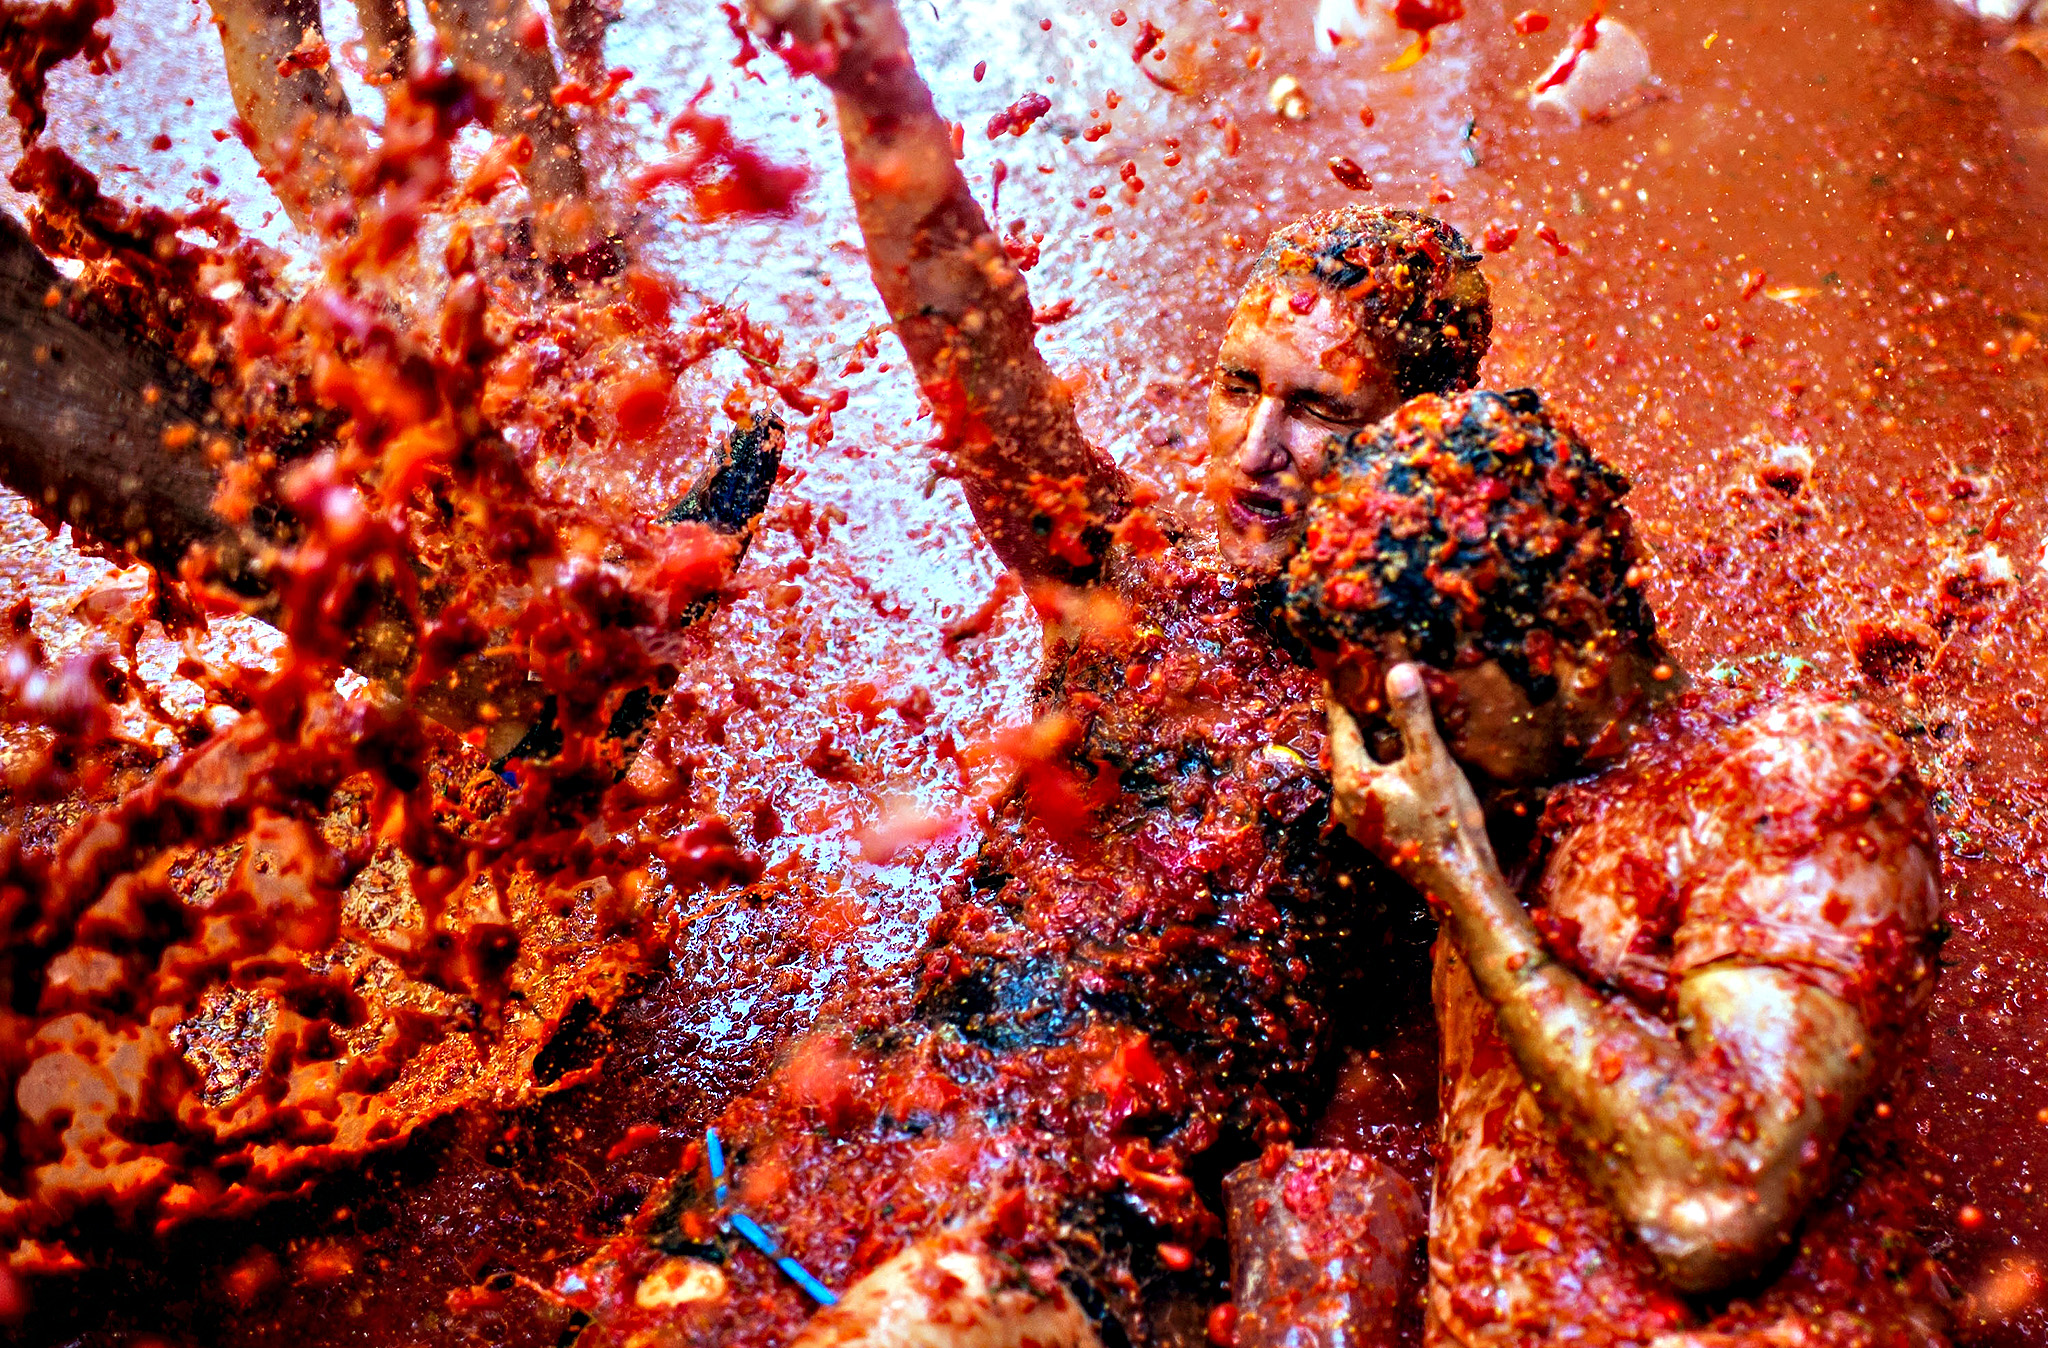 The World's Biggest Tomato Fight At Tomatina Festival...BUNOL, SPAIN - AUGUST 26:  Revellers enjoy the atmosphere in tomato pulp while participating the annual Tomatina festival on August 26, 2015 in Bunol, Spain. An estimated 22,000 people threw 150 tons of ripe tomatoes in the world's biggest tomato fight held annually in this Spanish Mediterranean town.